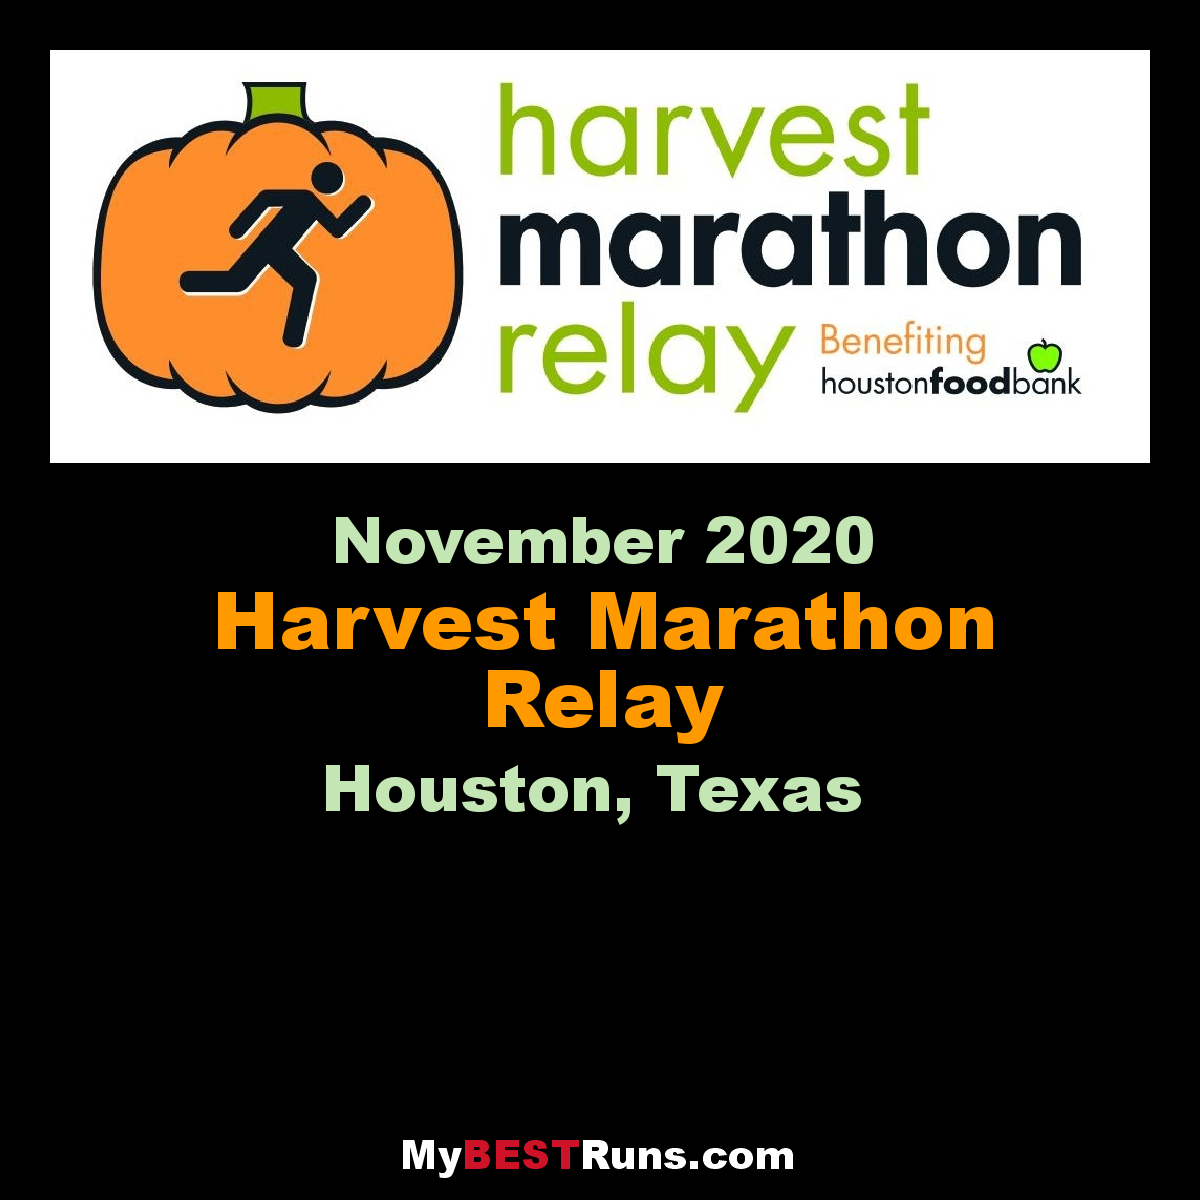 Harvest Marathon Relay